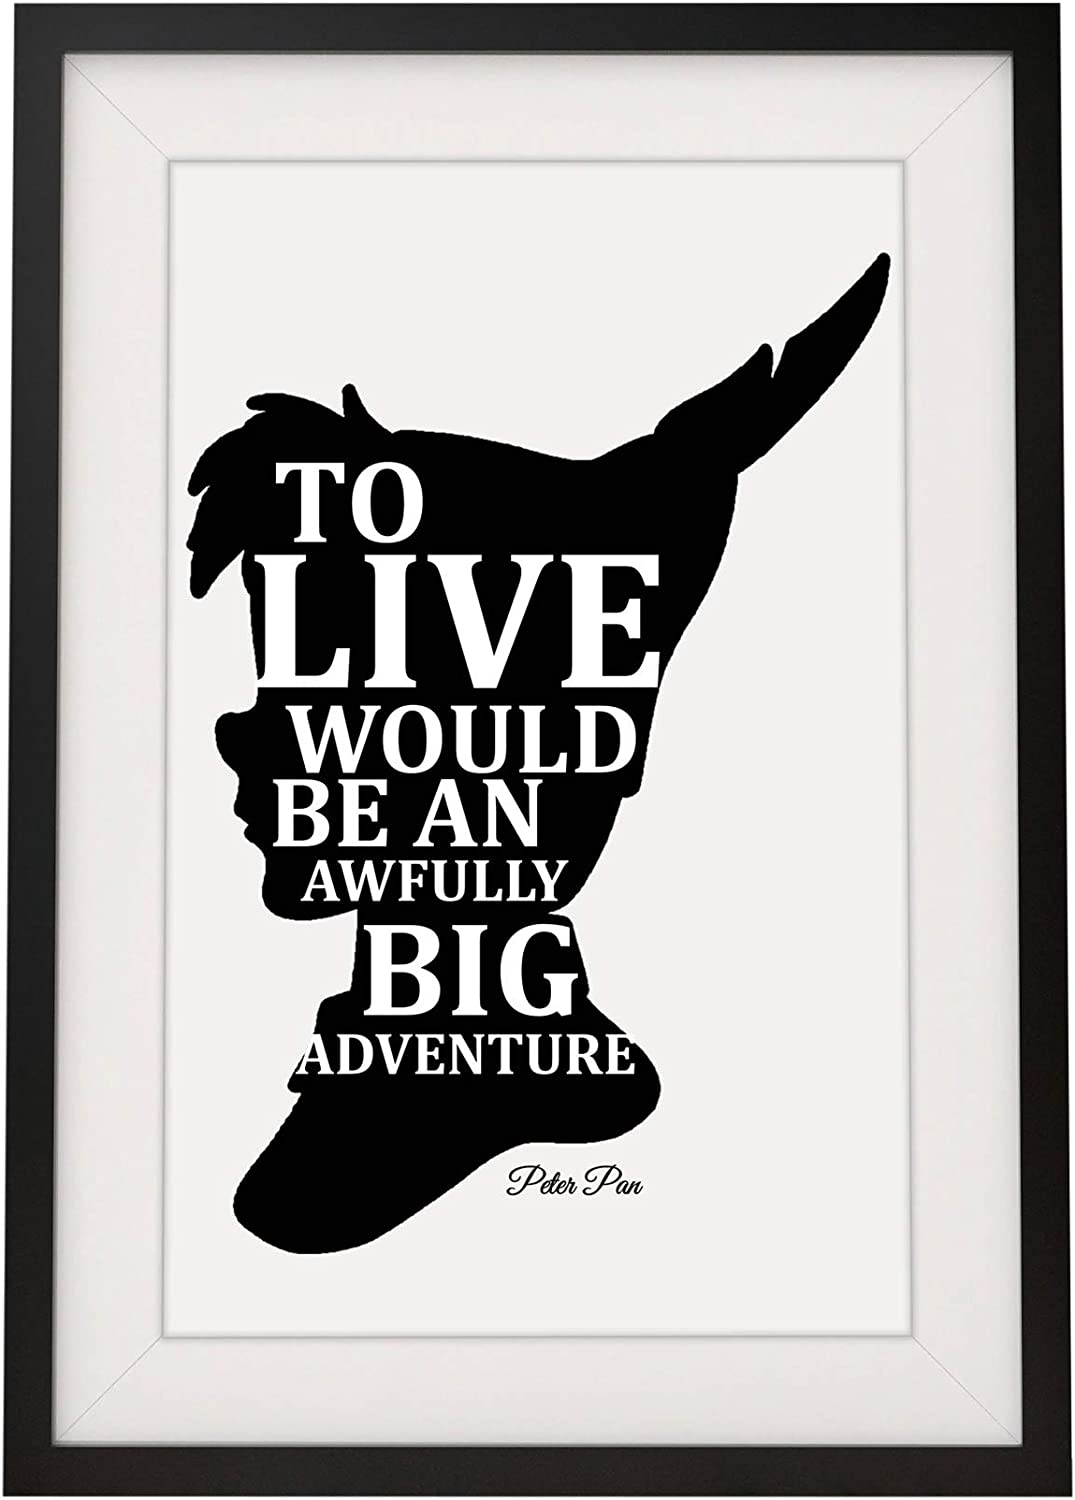 Peter Pan inspired quote wall art disney gift home decor poster print